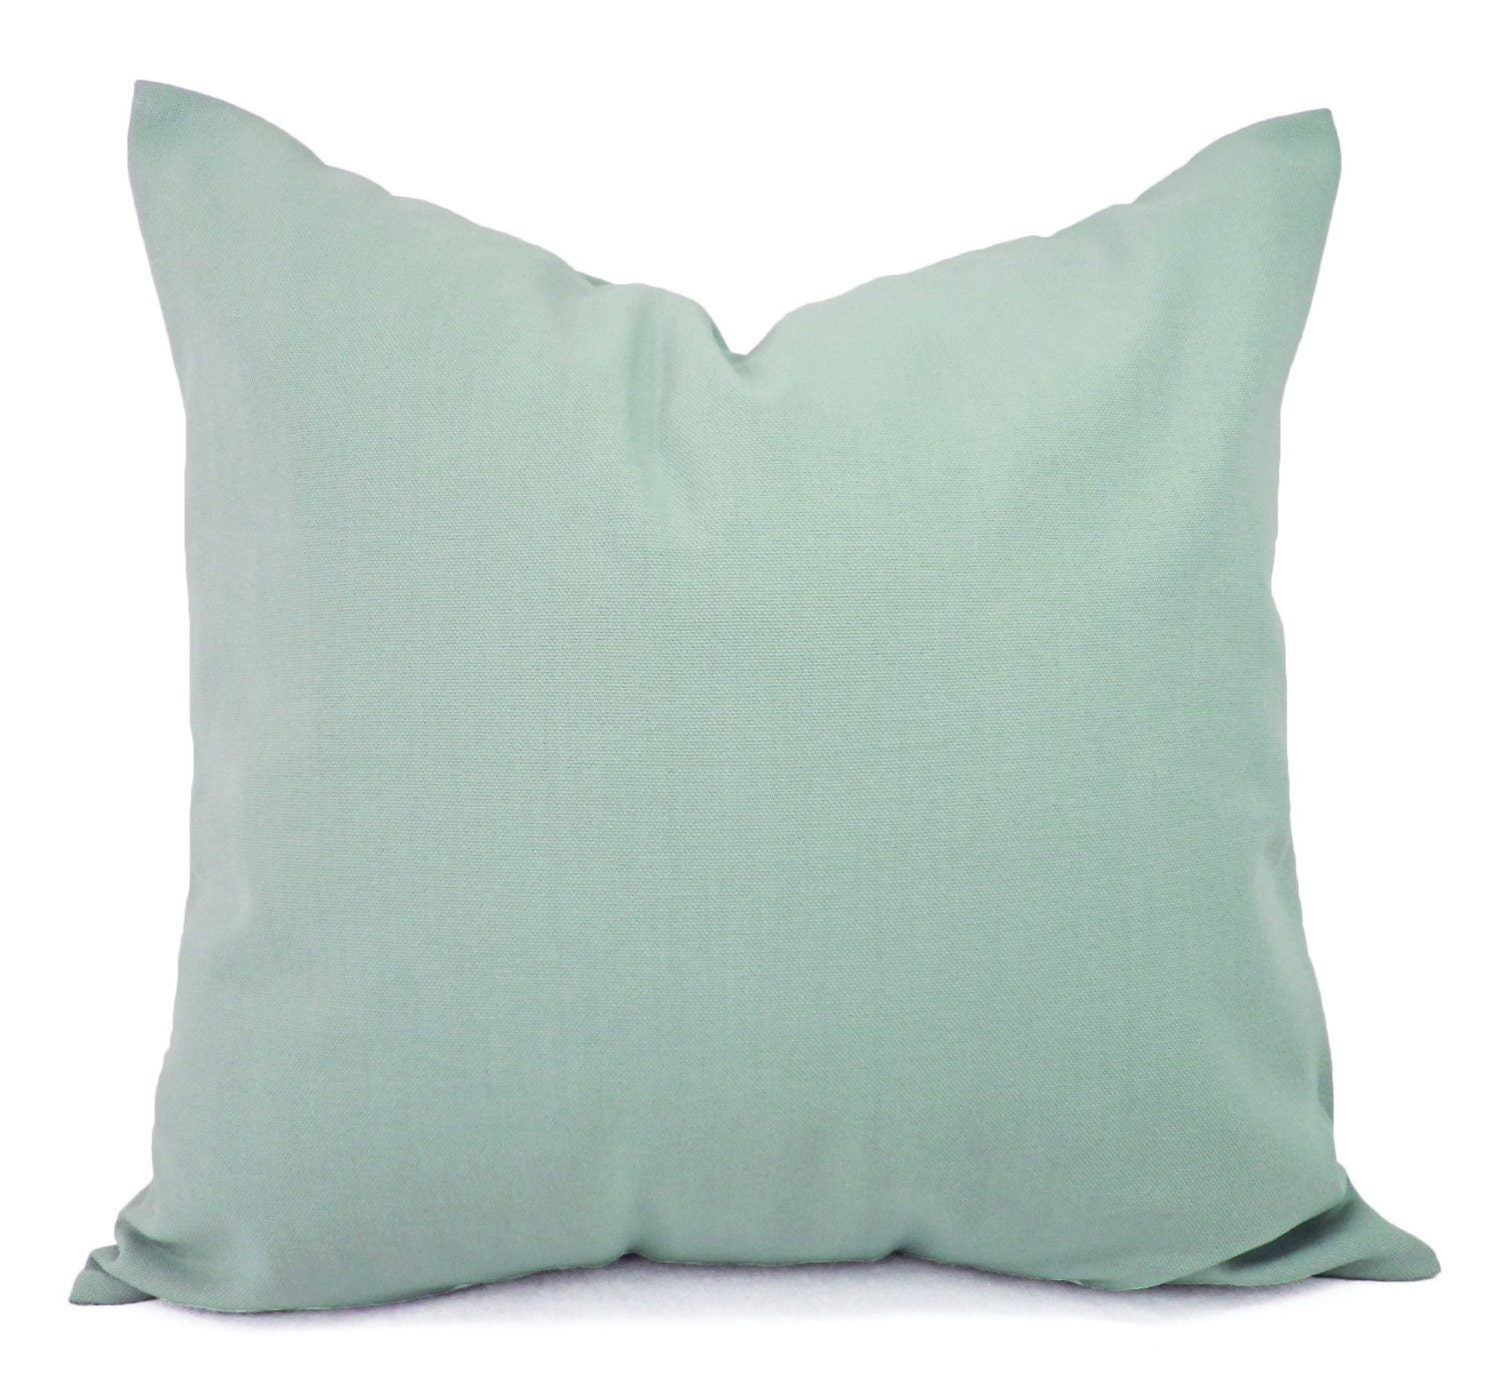 Throw Pillow Covers Set : Two Solid Spa Blue Throw Pillow Covers Blue Couch Pillow